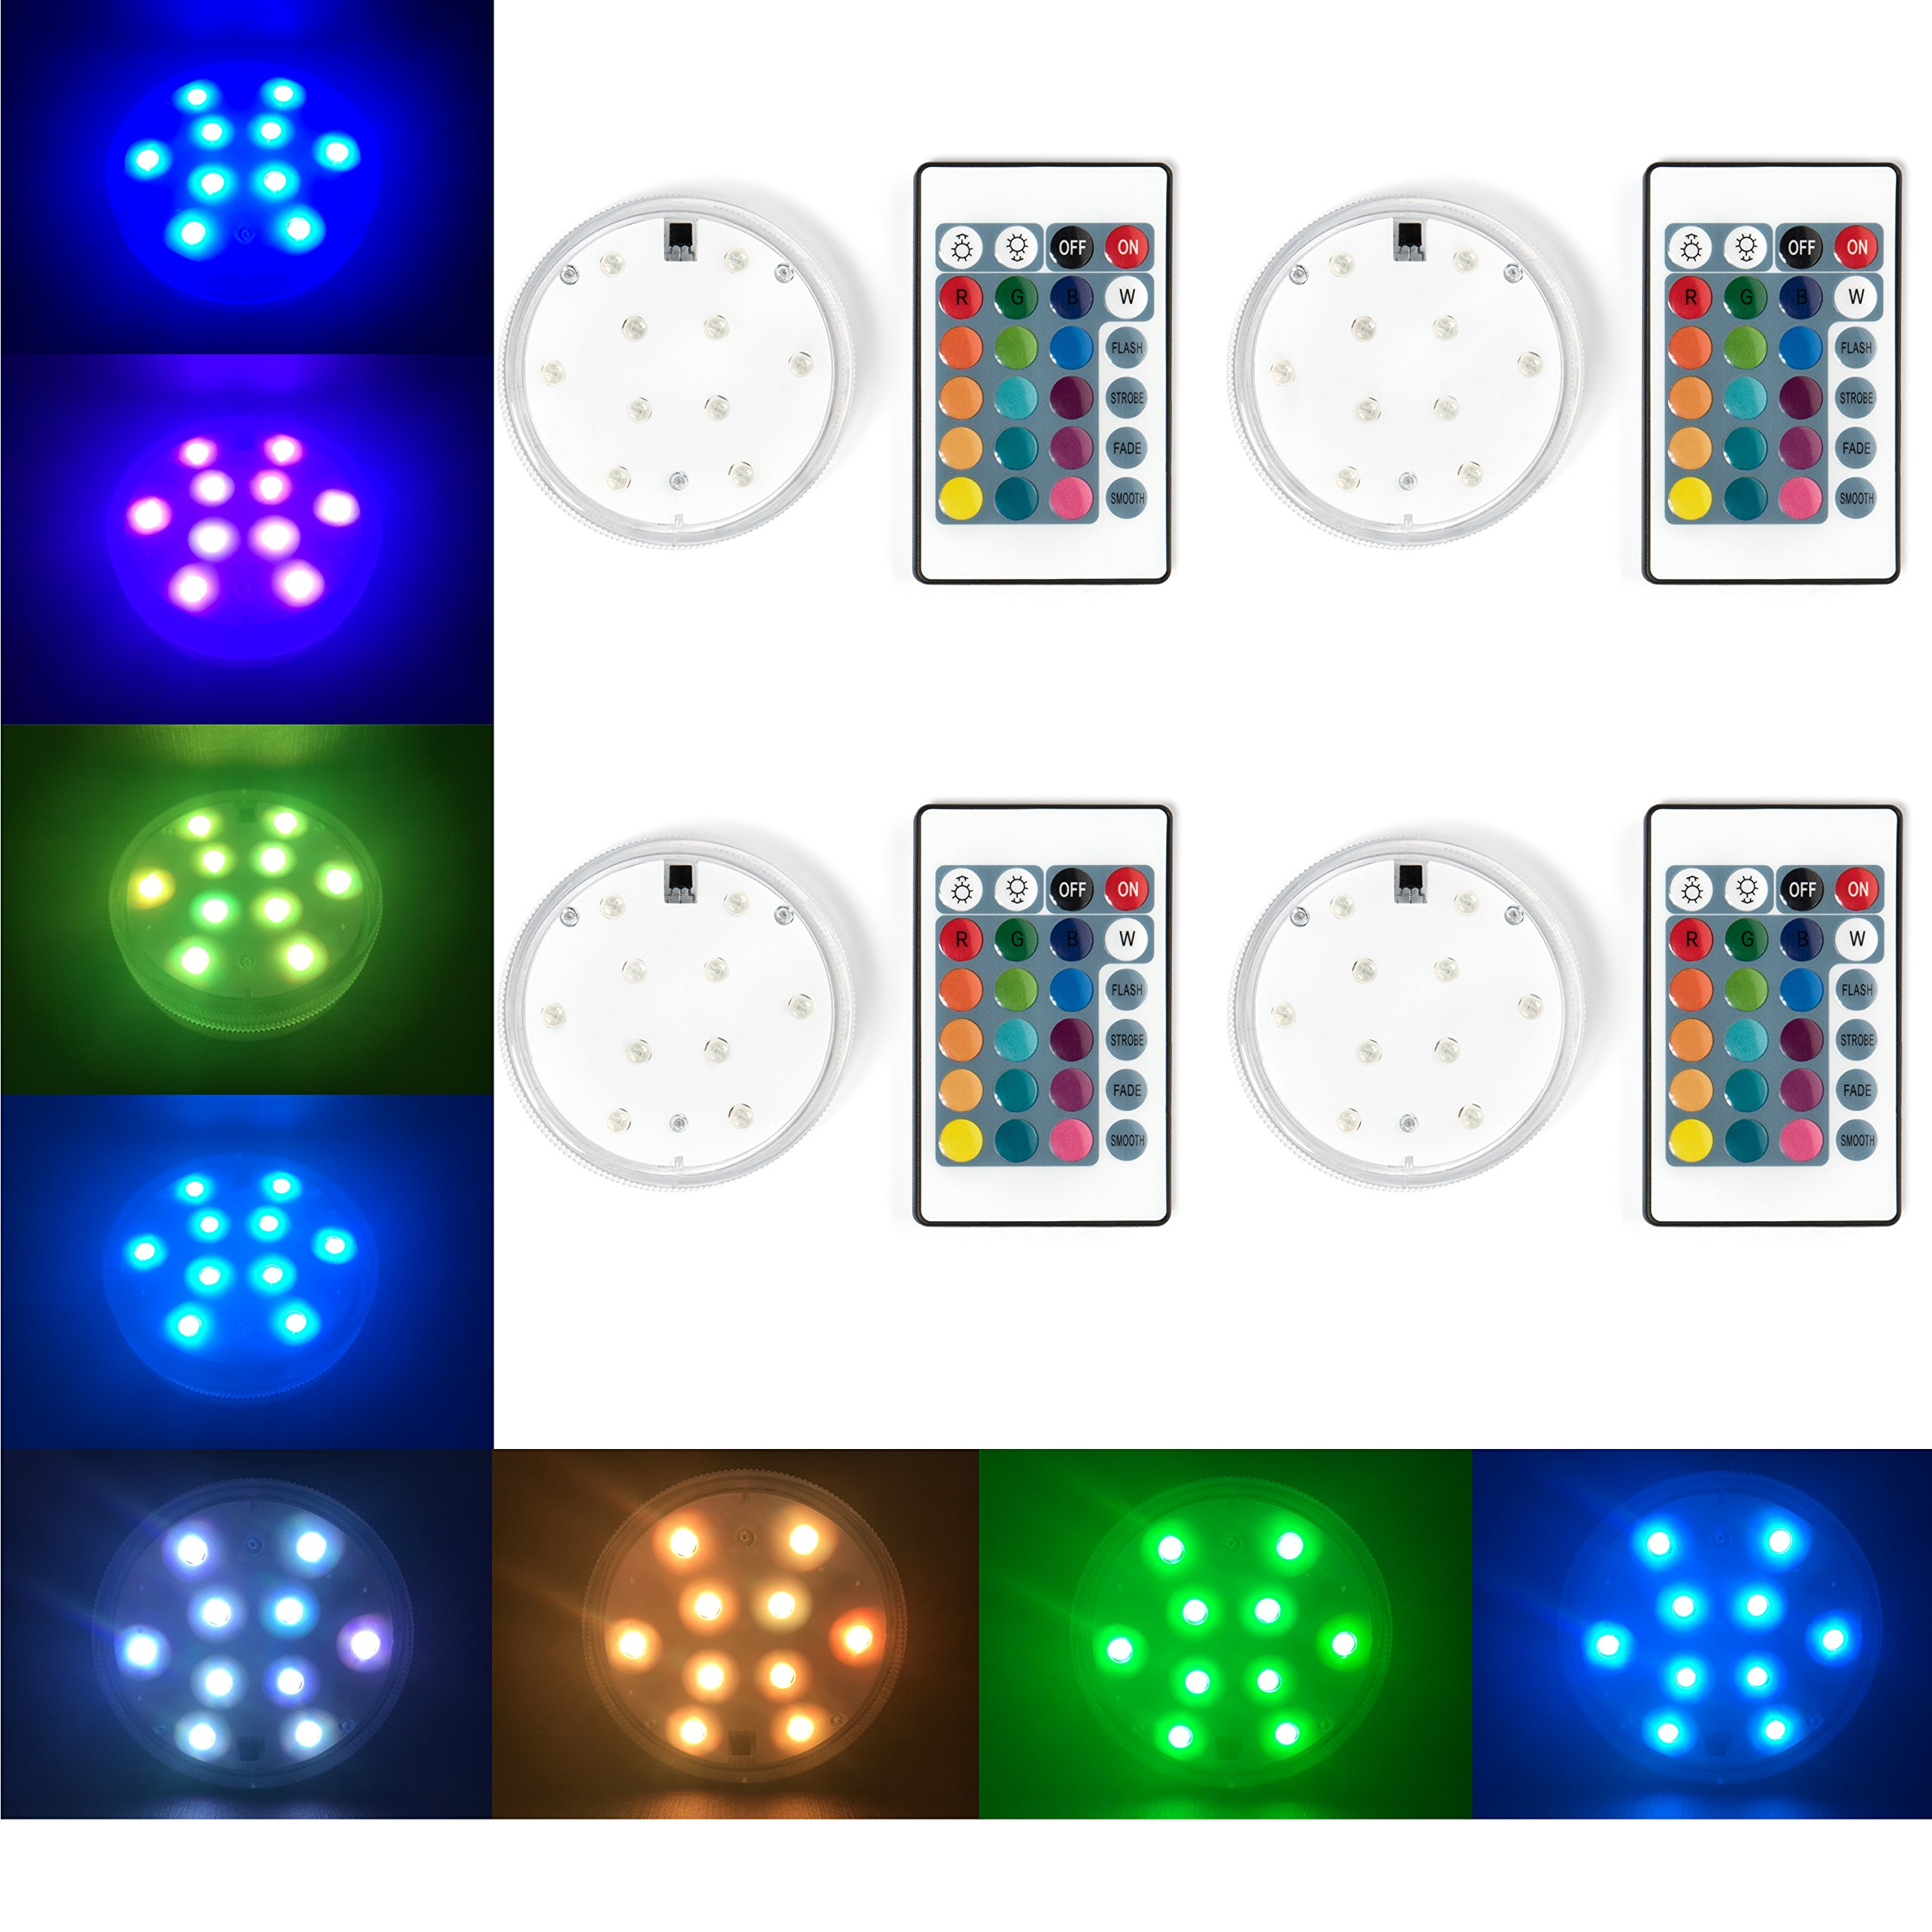 Submersible LED Lights [4 Pack], RGB Submersible LED Lights, Fountain Lights LED Submersible, LED Pond Lights Submersible ~ Non-Flicker Multicolor LED for a Smooth Out-of-This-World Light Show!